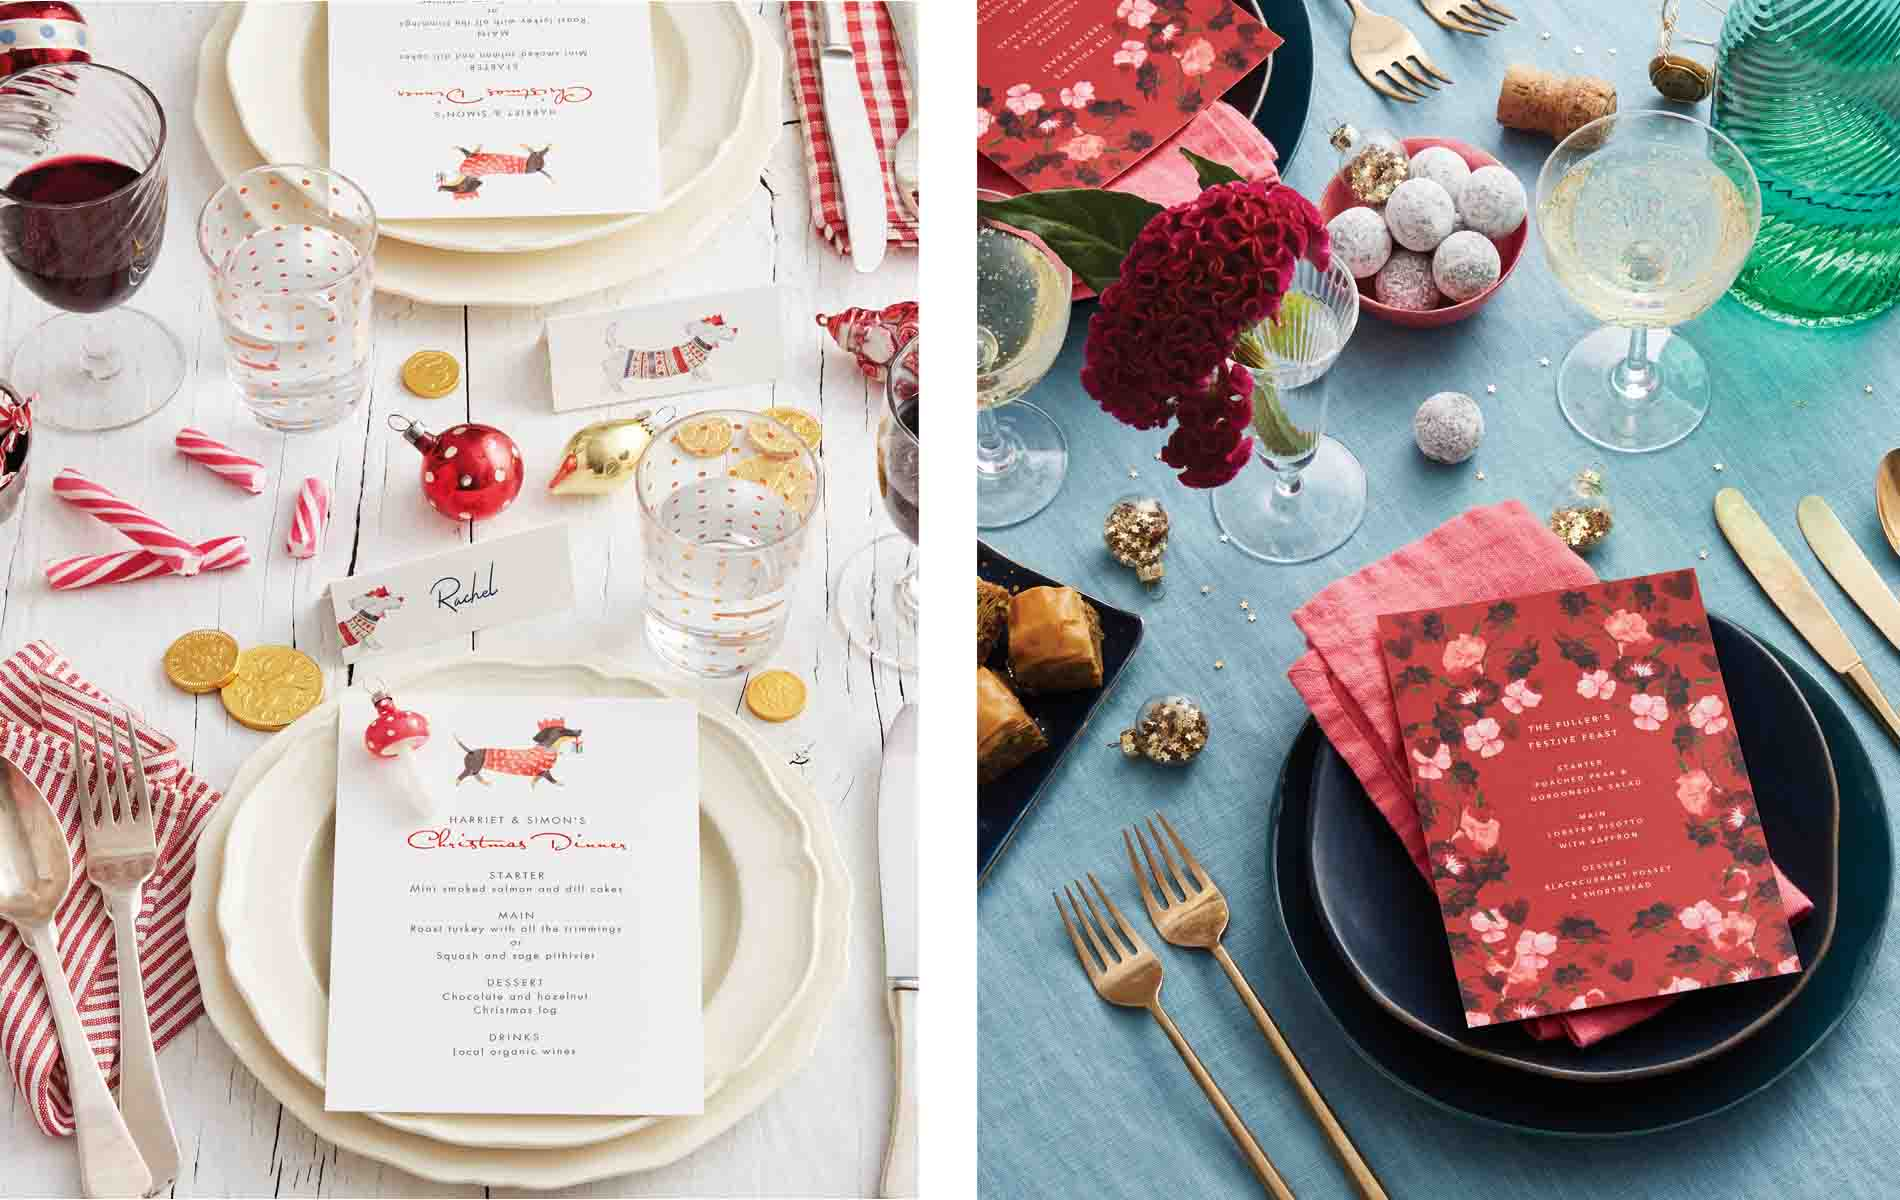 Papier Christmas Table Setting 2018